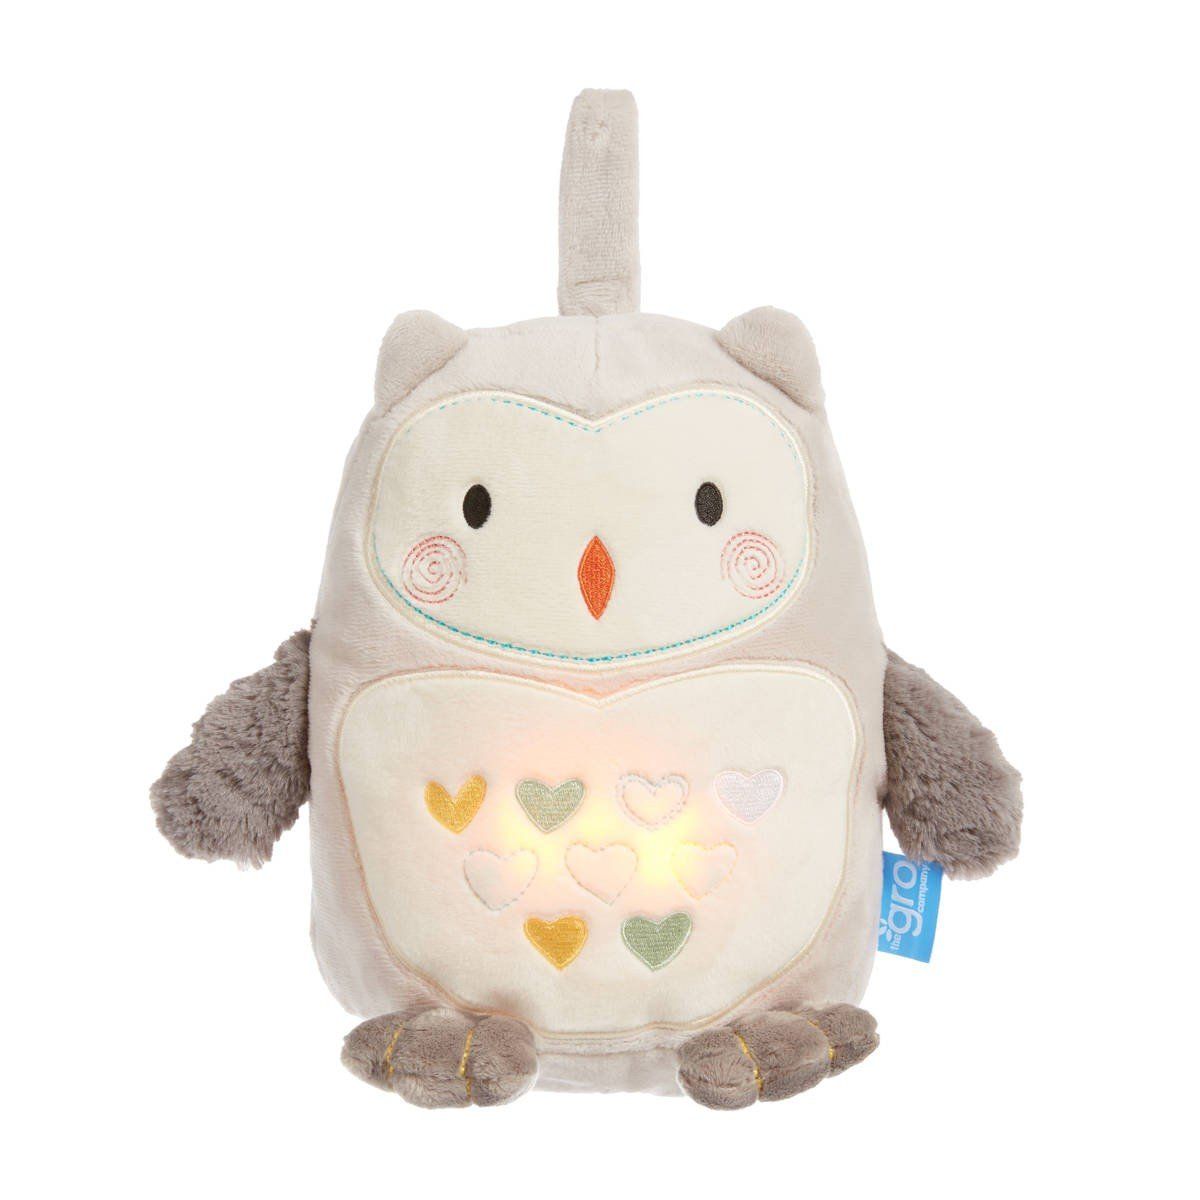 GroFriends Ollie the Owl Light and sound sleep aid The Gro Company AKC0030